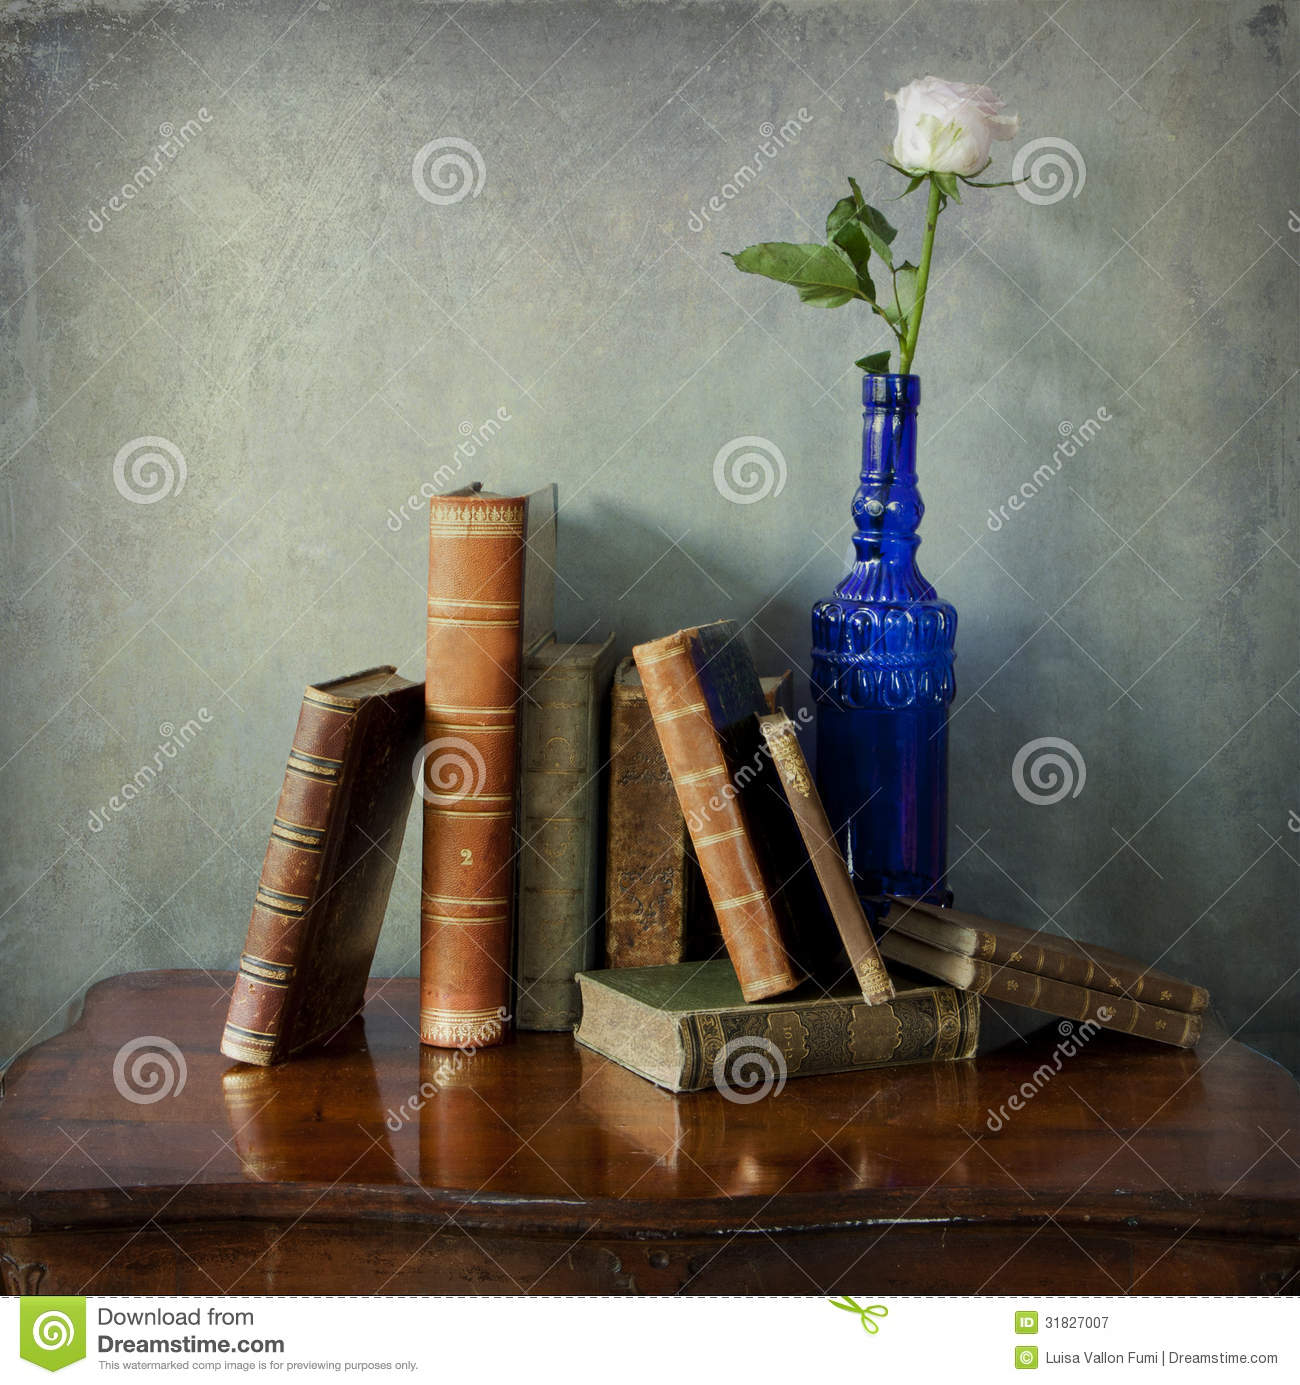 Antique Books And A Pink Rose In Blue Bottle